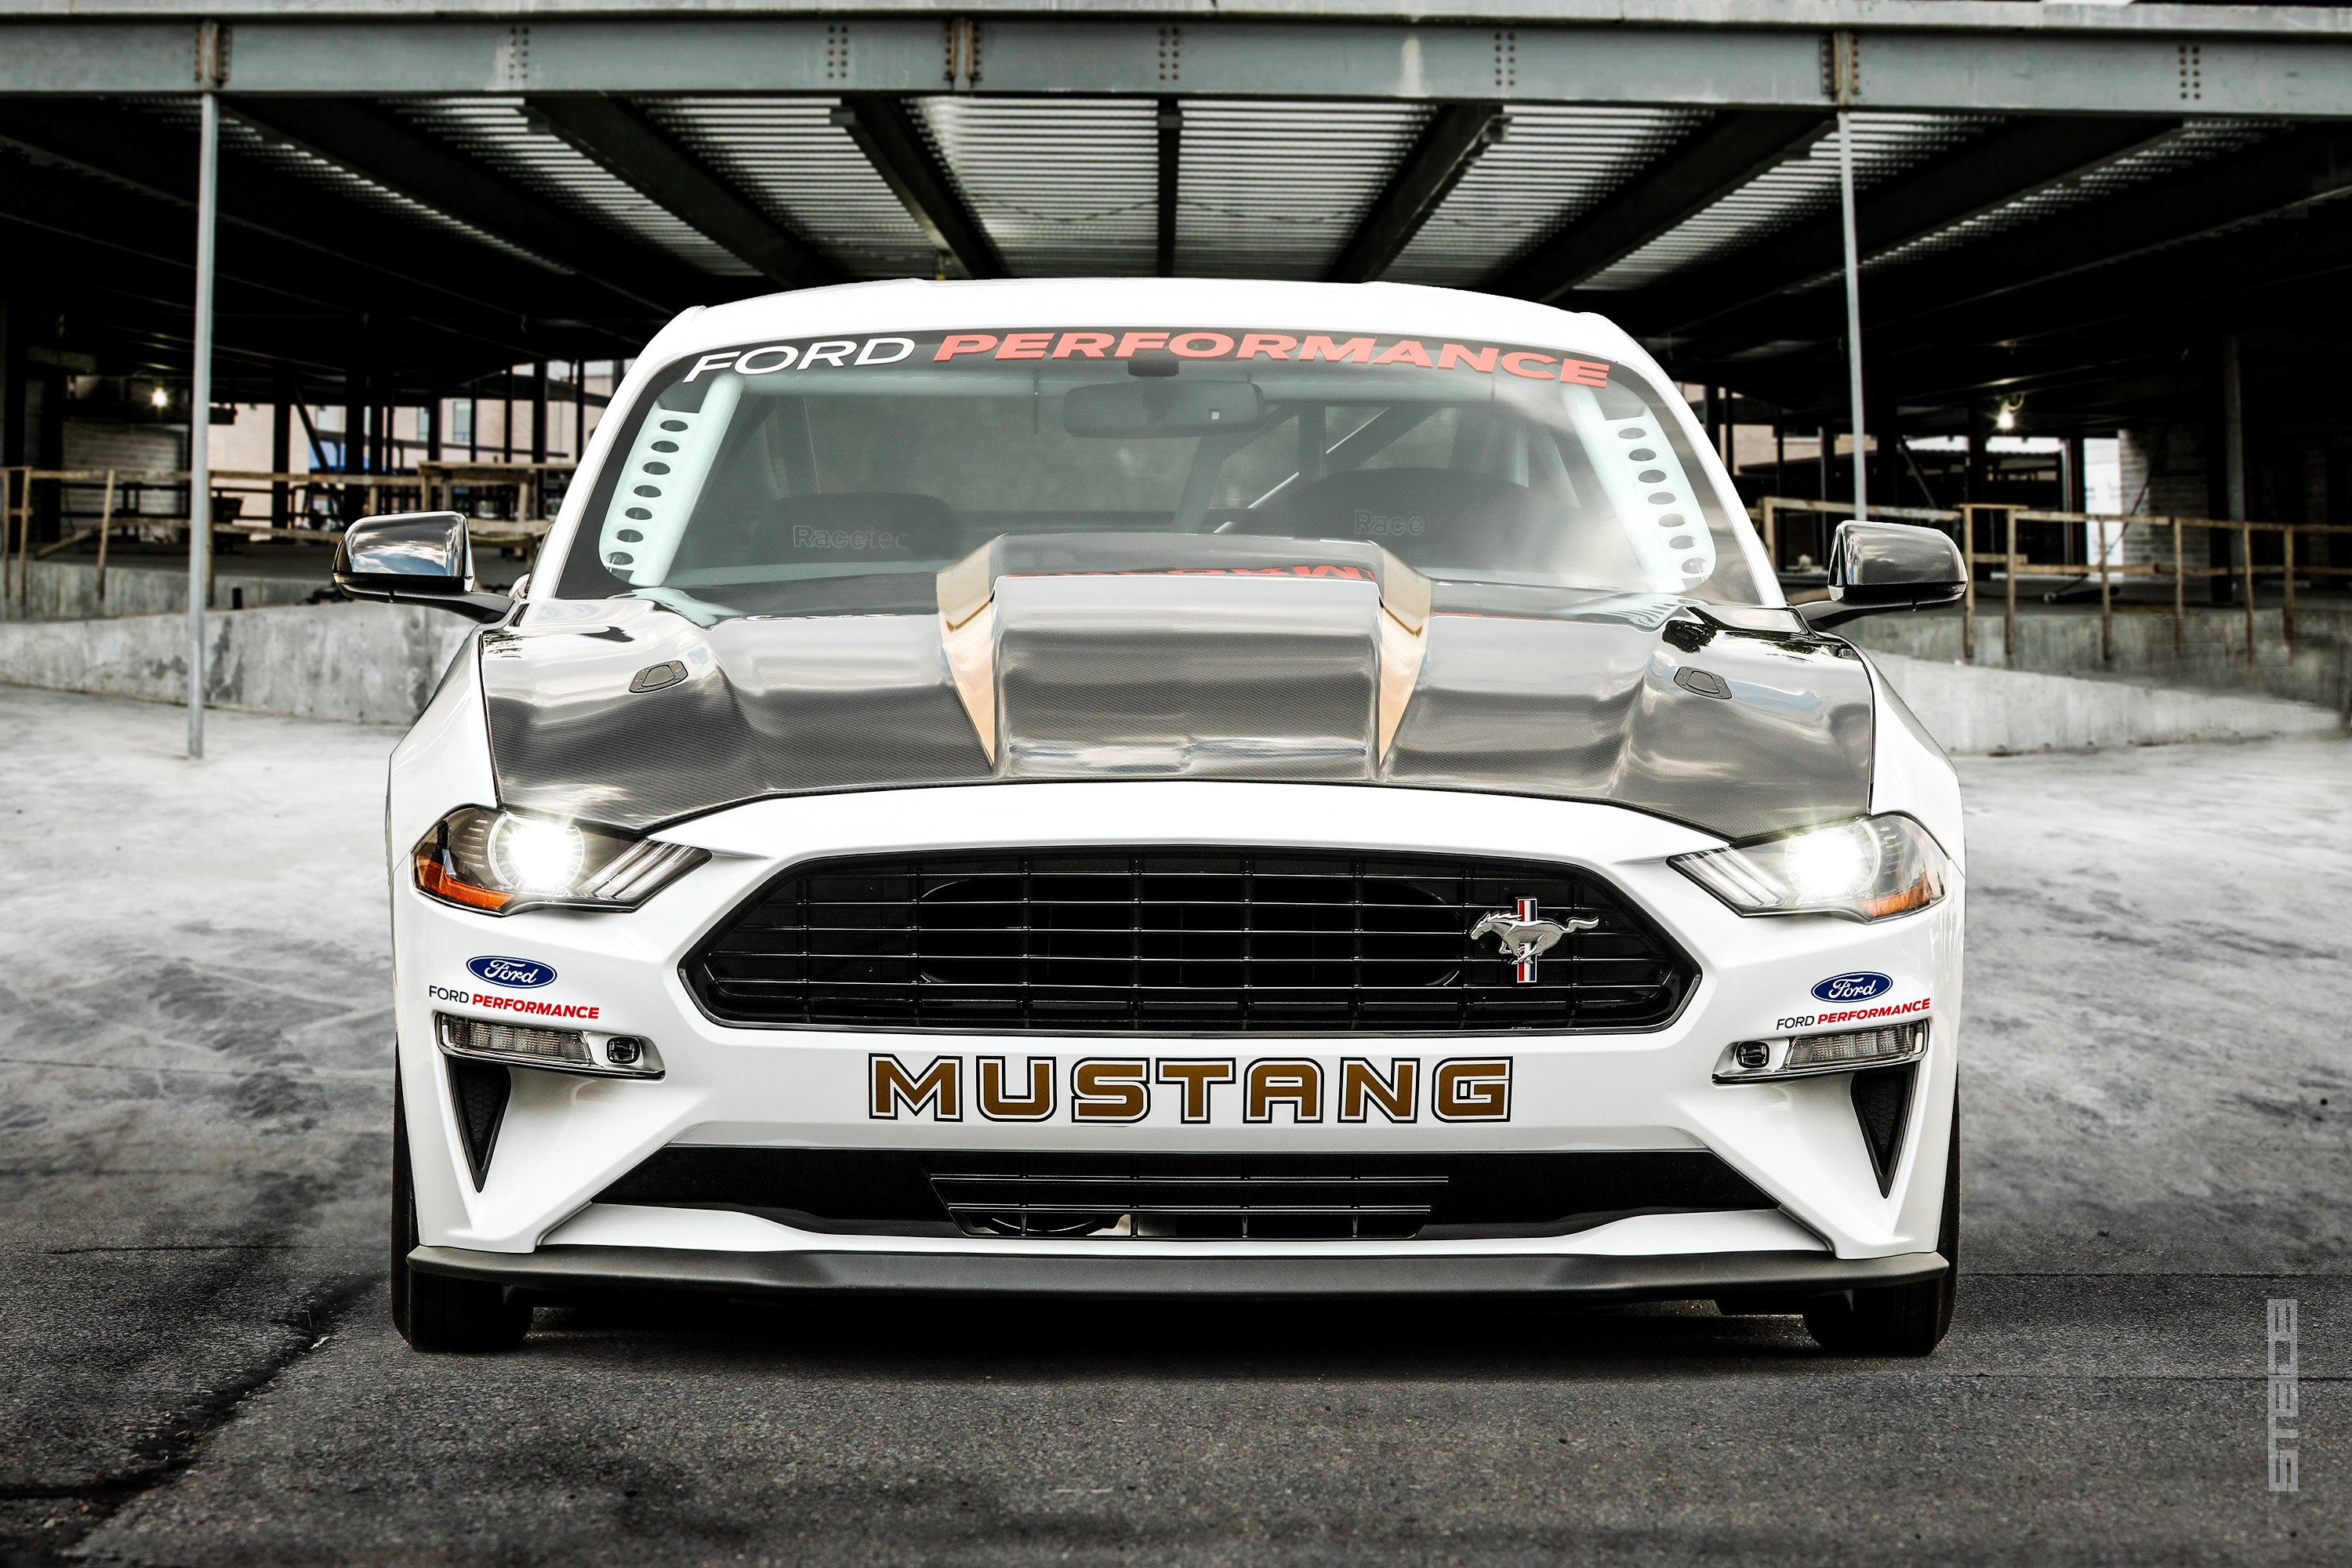 Ford Mustang Cobra Jet - 50th Anniversary